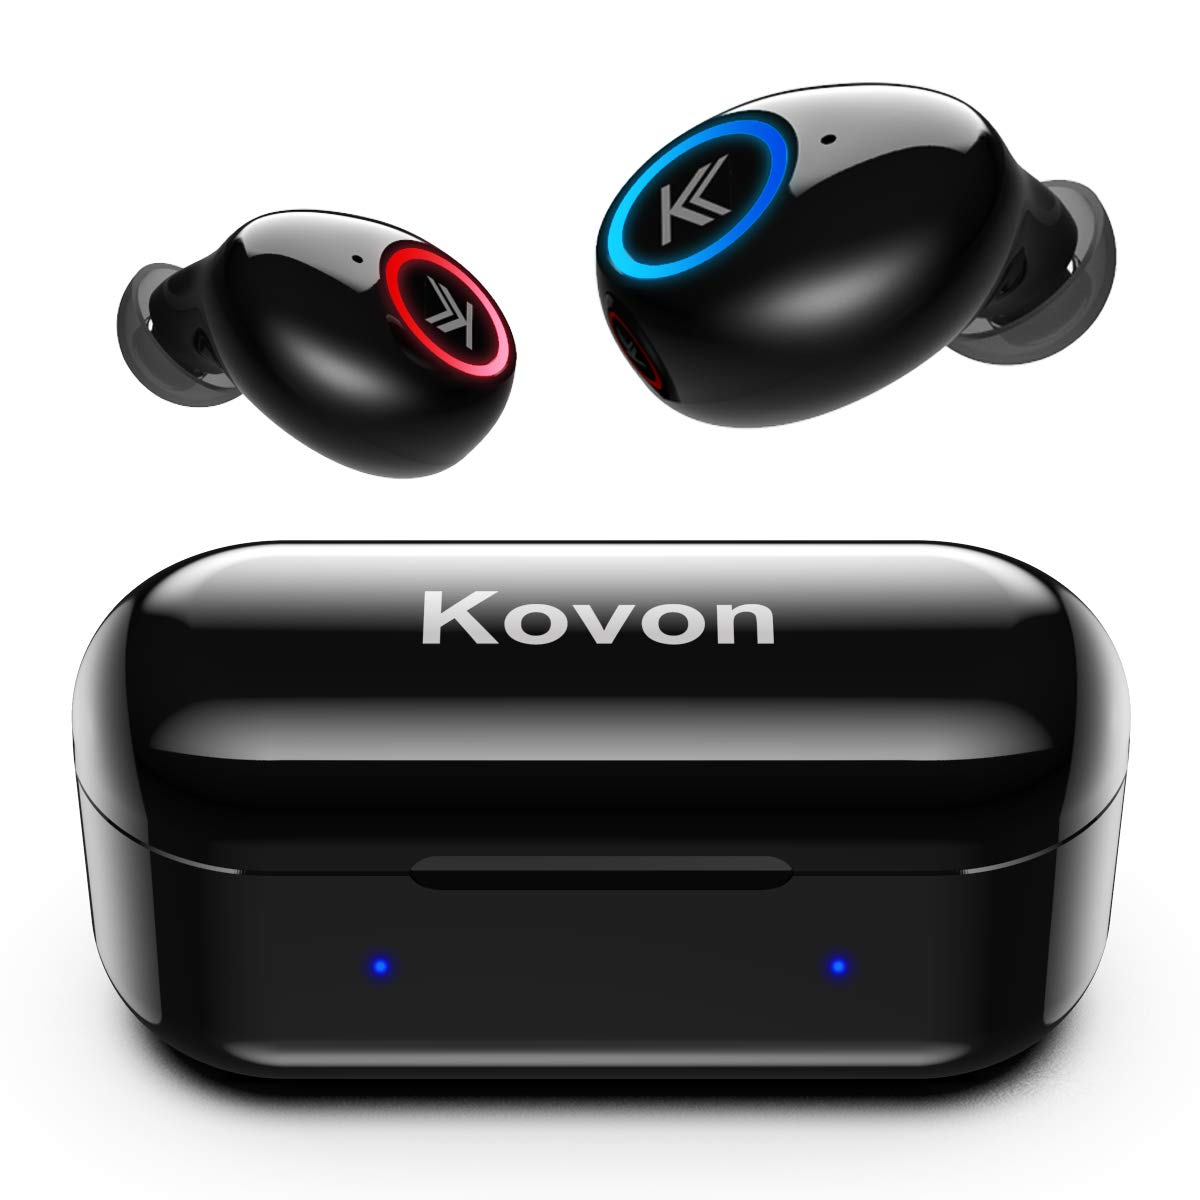 Bluetooth Headphones, Kovon Bluetooth 5.0 Wireless Earbuds Deep Bass Stereo Hi-Fi Sound in-Ear Design Wireless Headphones Sweatproof Noise Cancellation Headsets with Built-in Mic and Charging Case